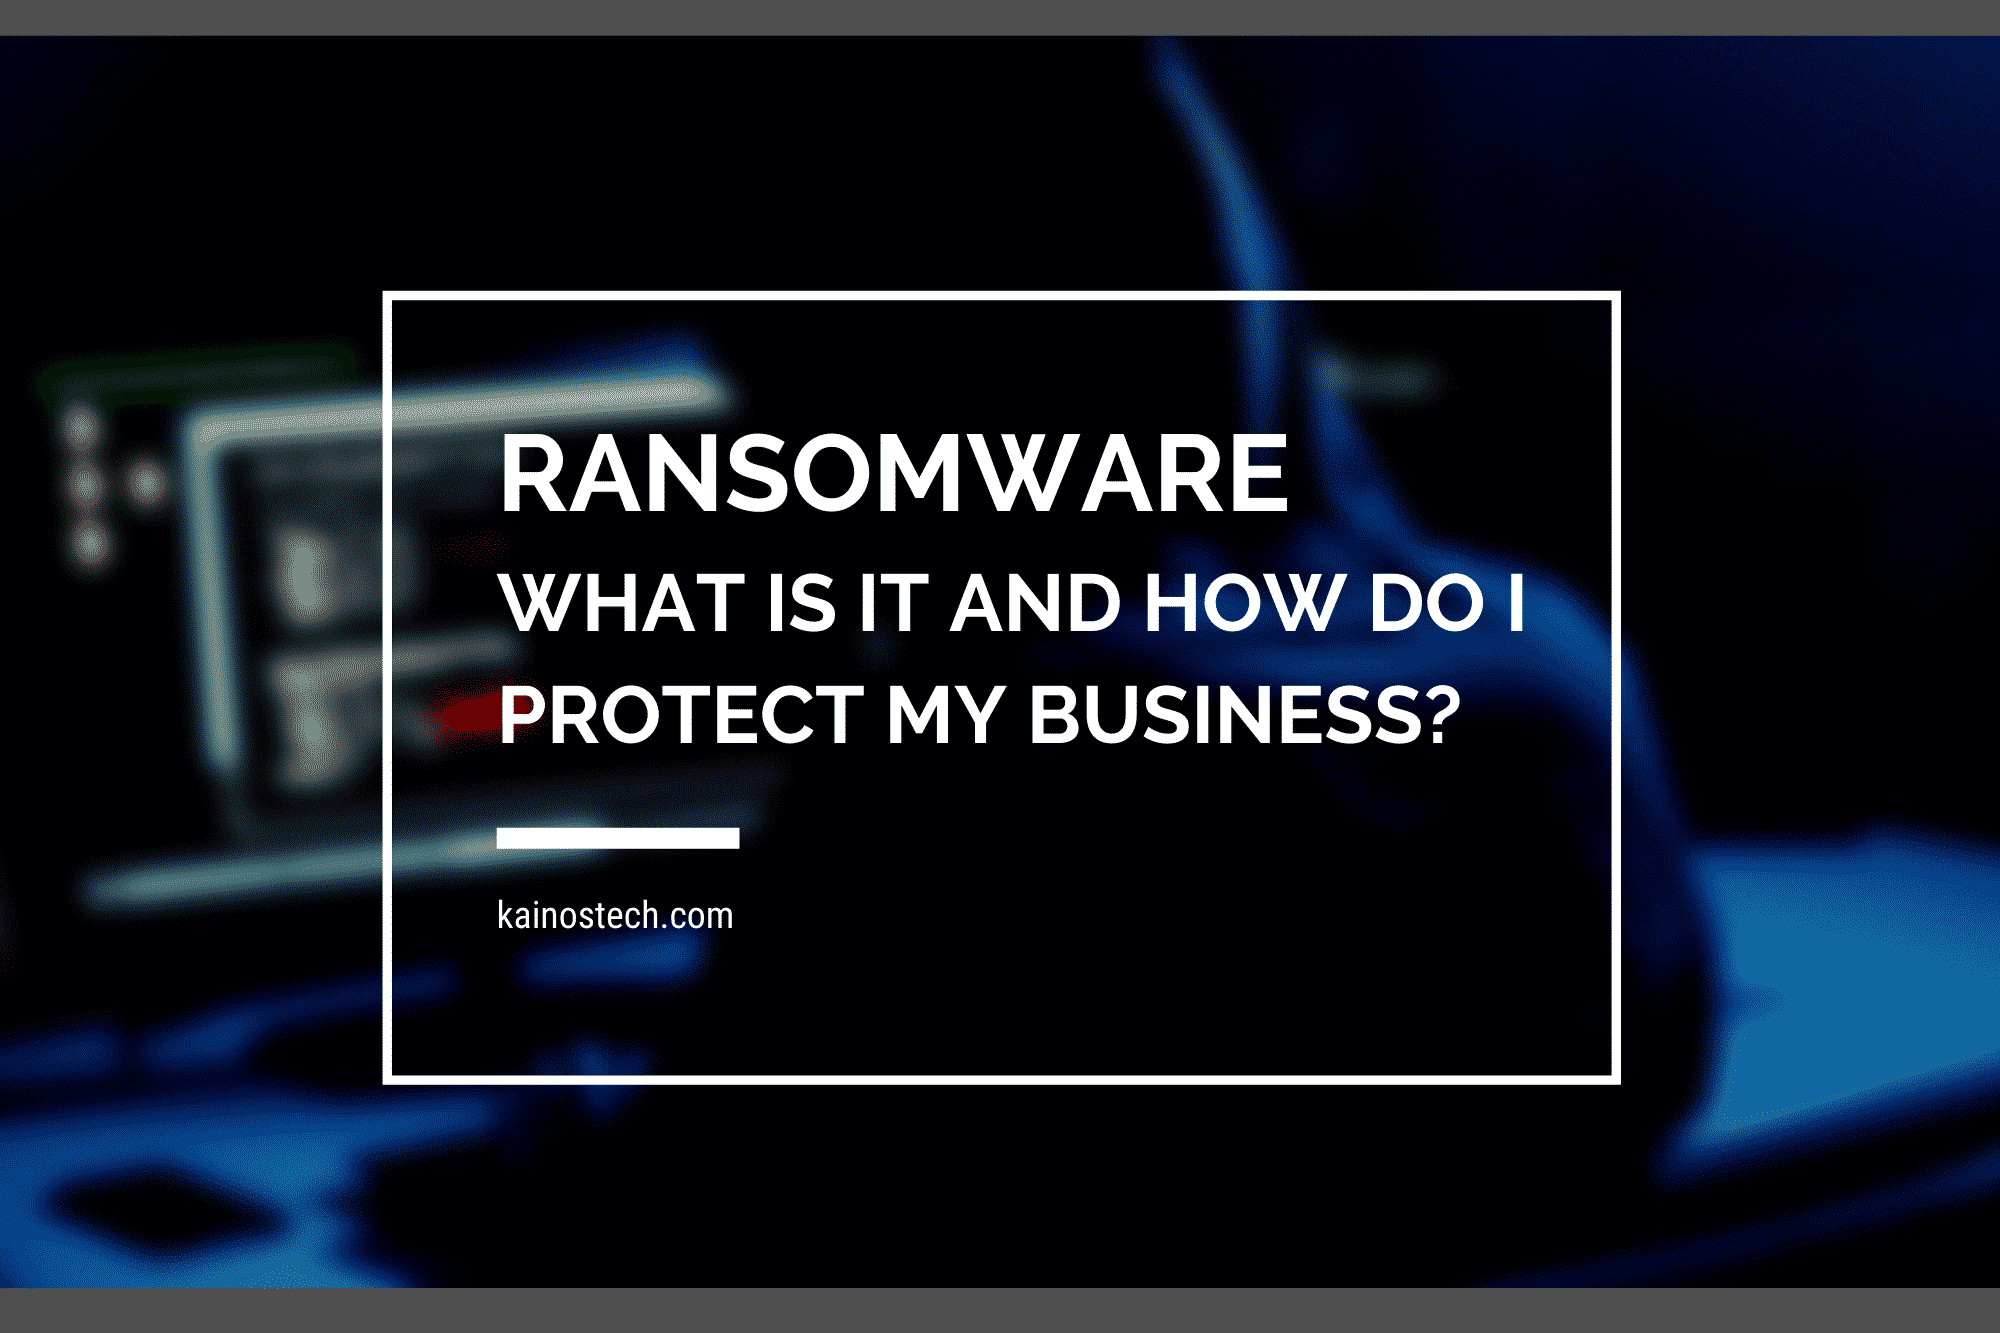 Ransomware: What it is and how do I protect my business?